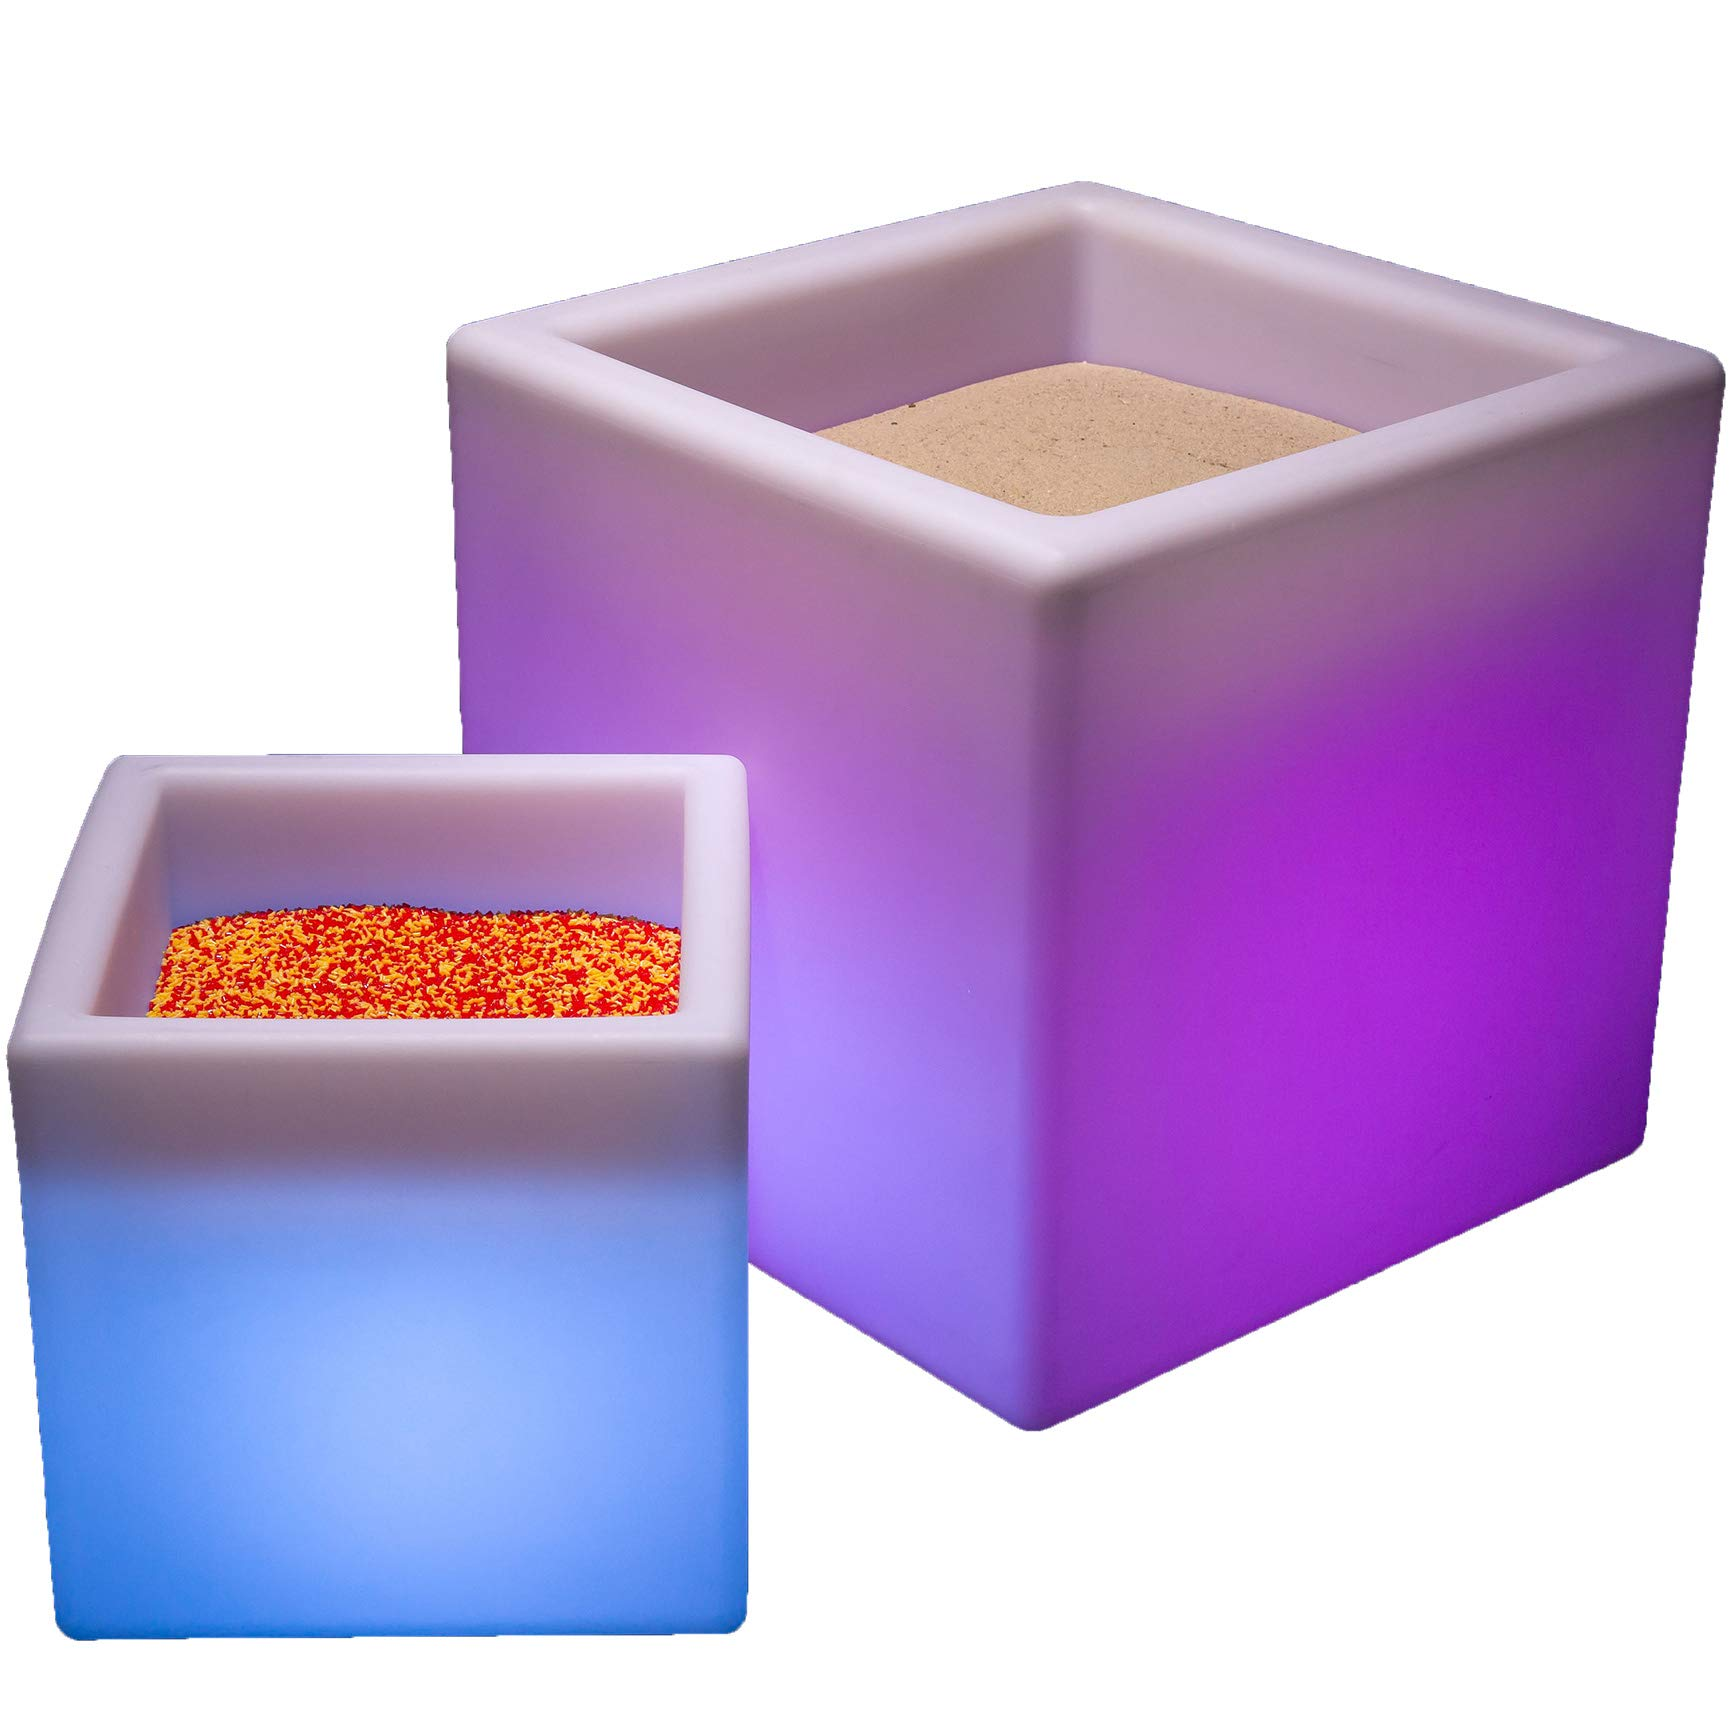 Fun and Function LimeLite Mini LED Sand Table - Plastic Table Features a Soft LED Glow with 16 Color Options for Ages 4 & Up - 12 inch